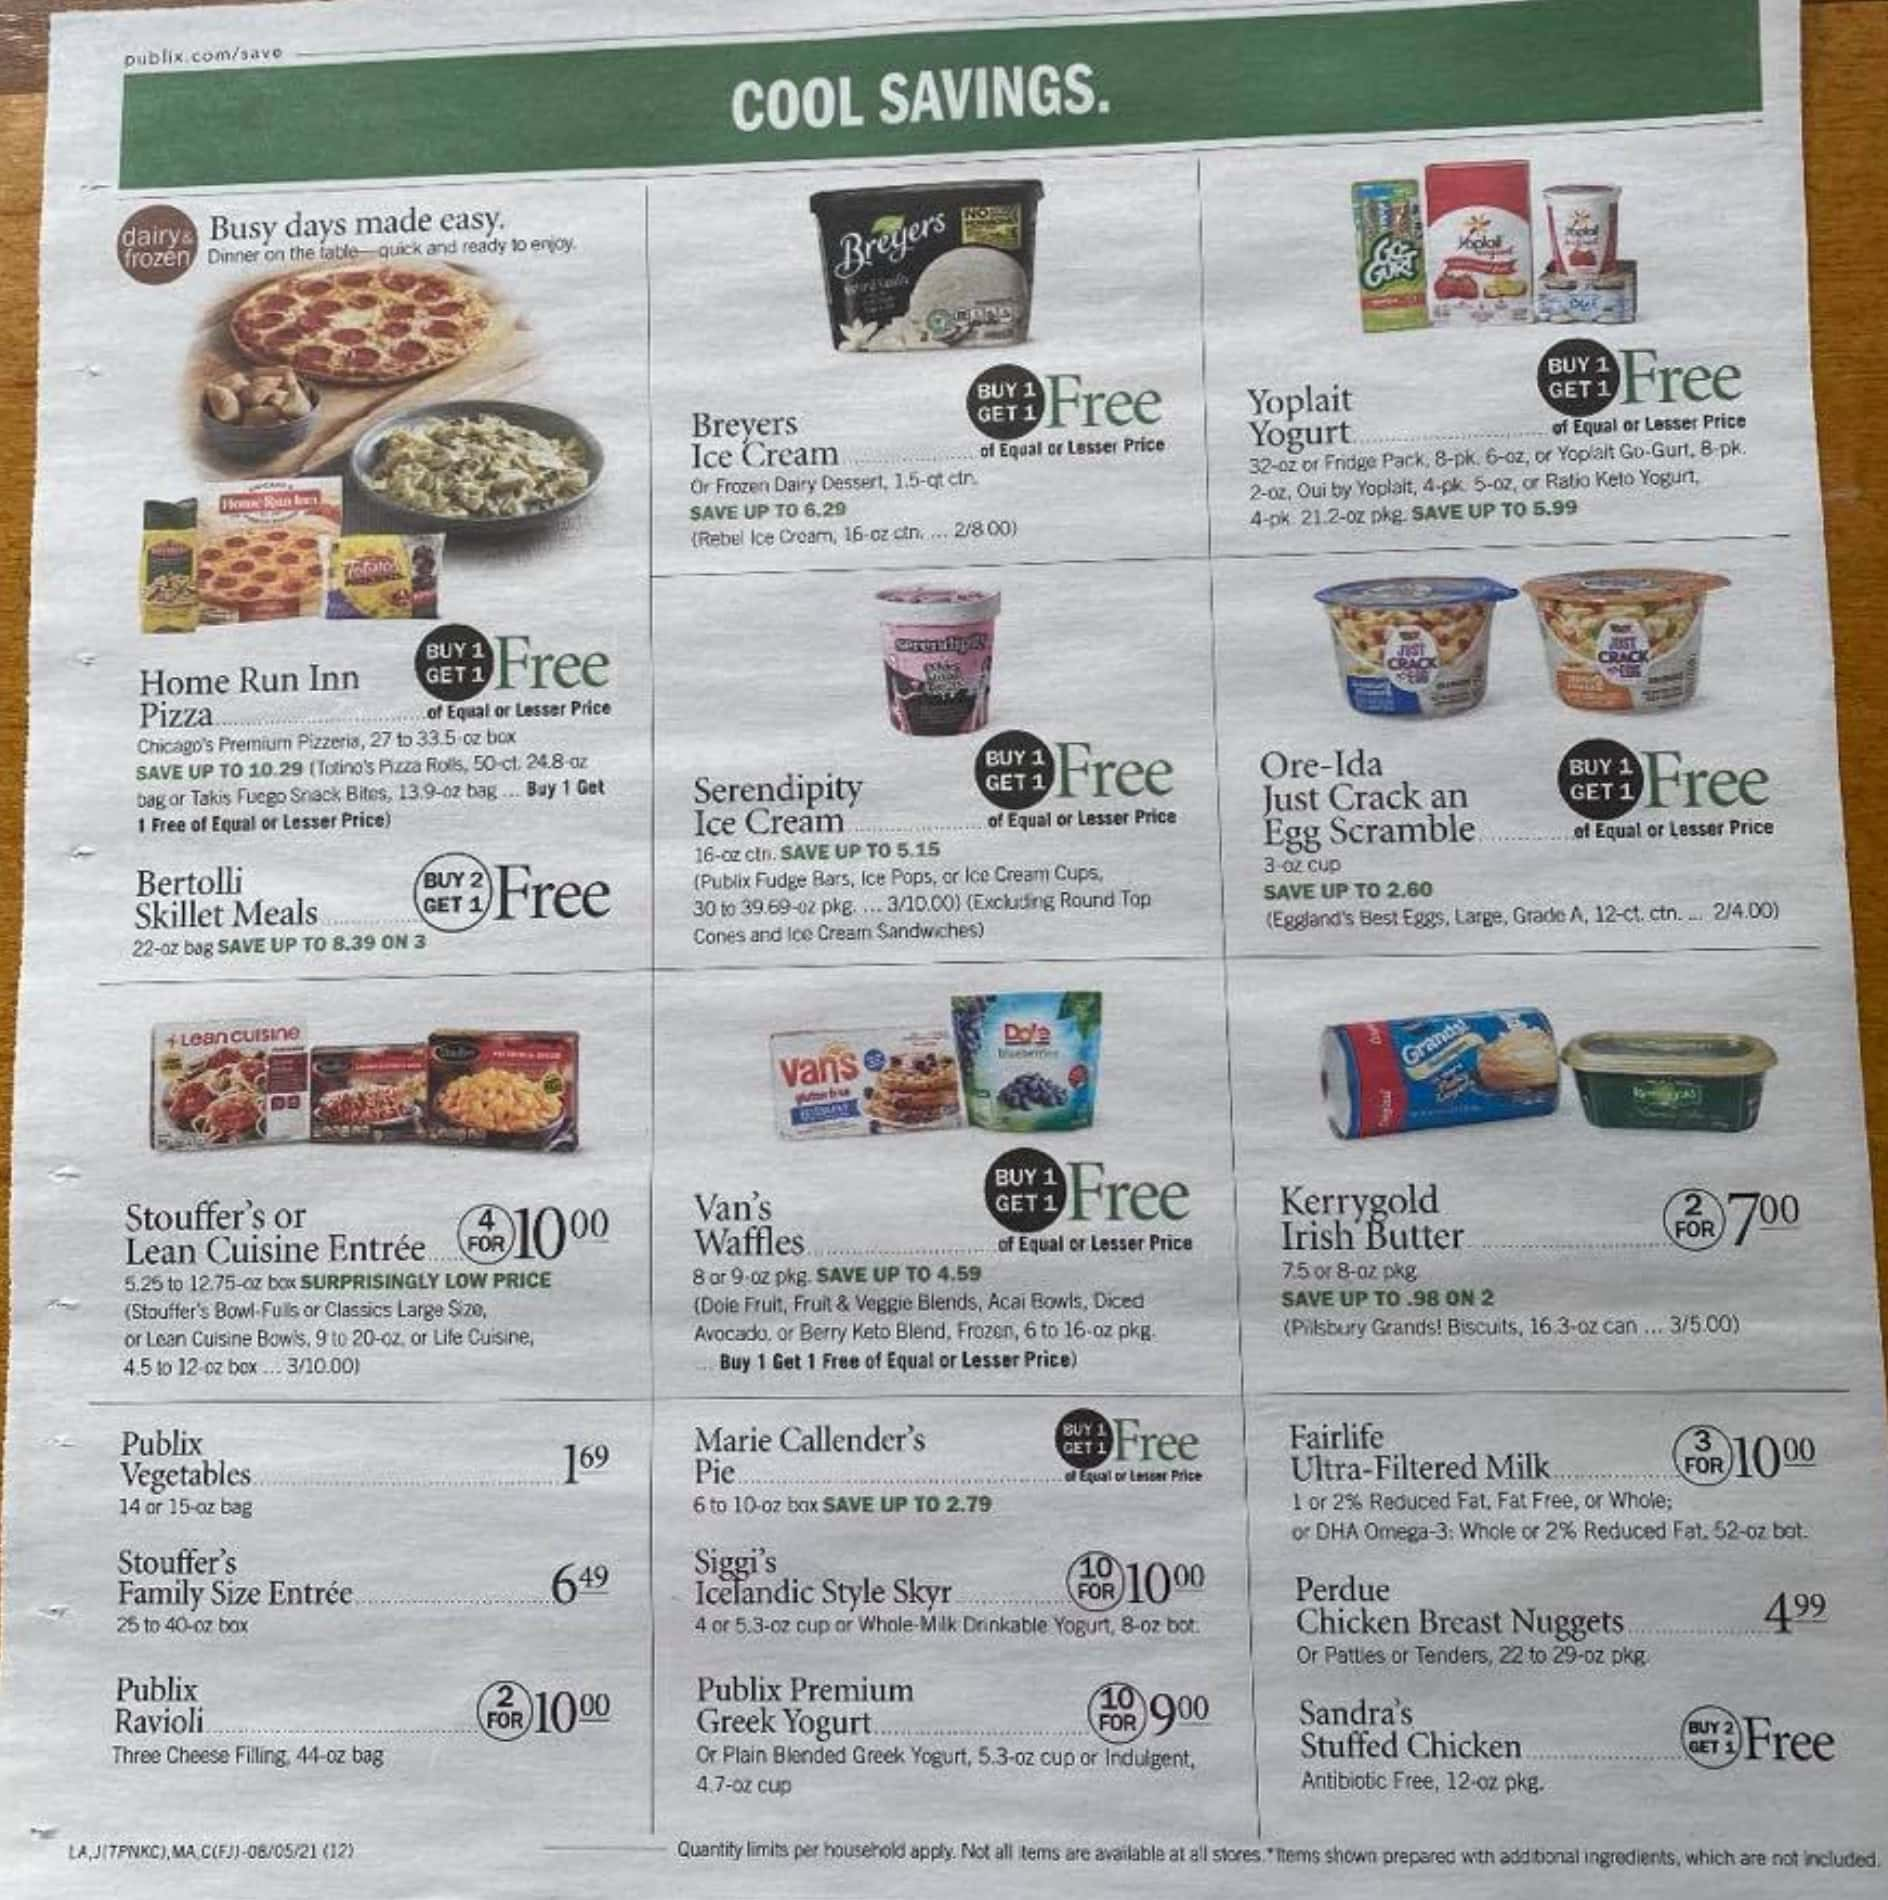 publix_weekly_ad_080421_12